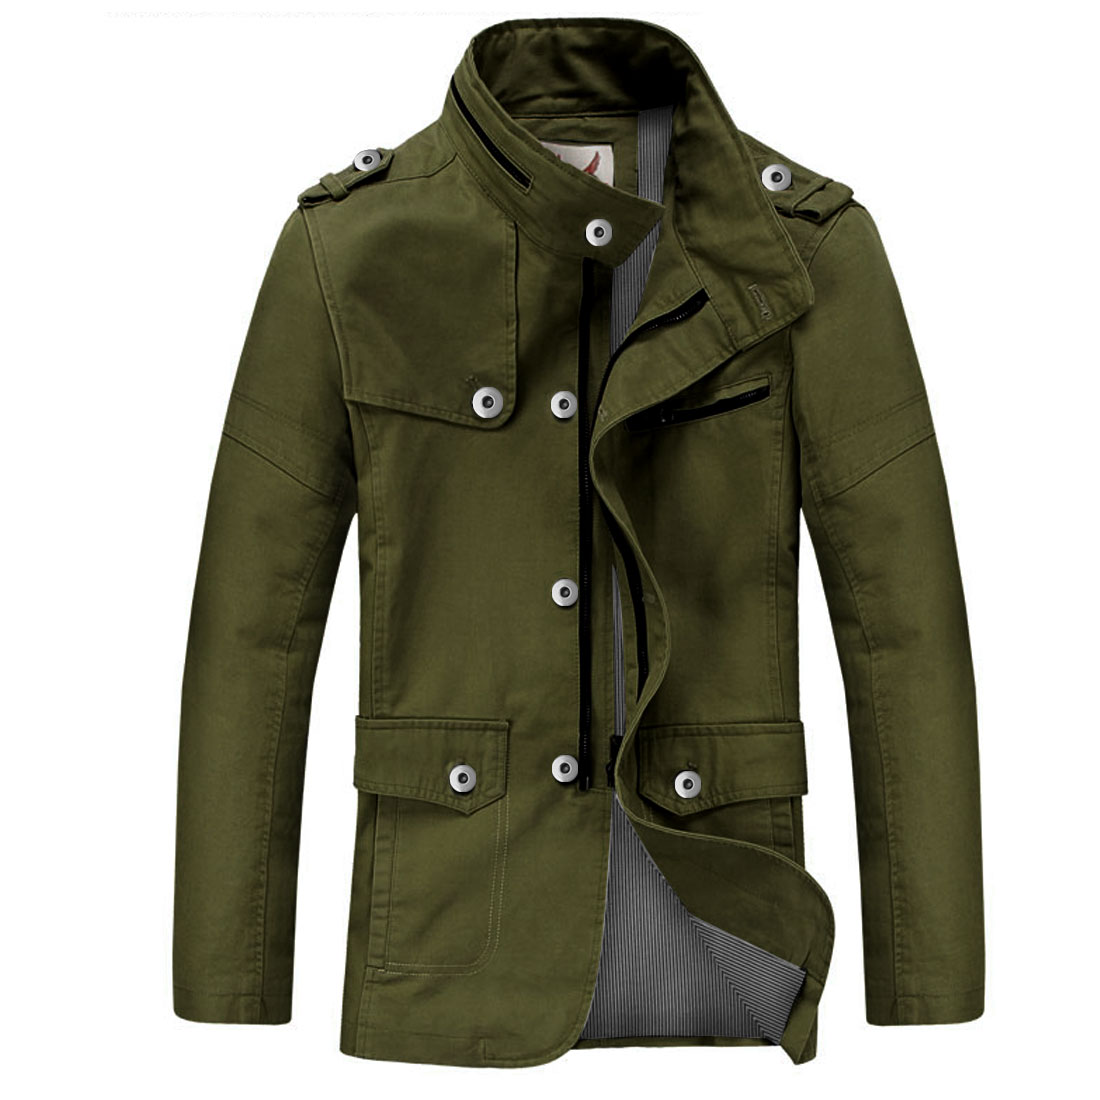 Men Stand Collar Zip Up Pockets Below Jacket Army Green M